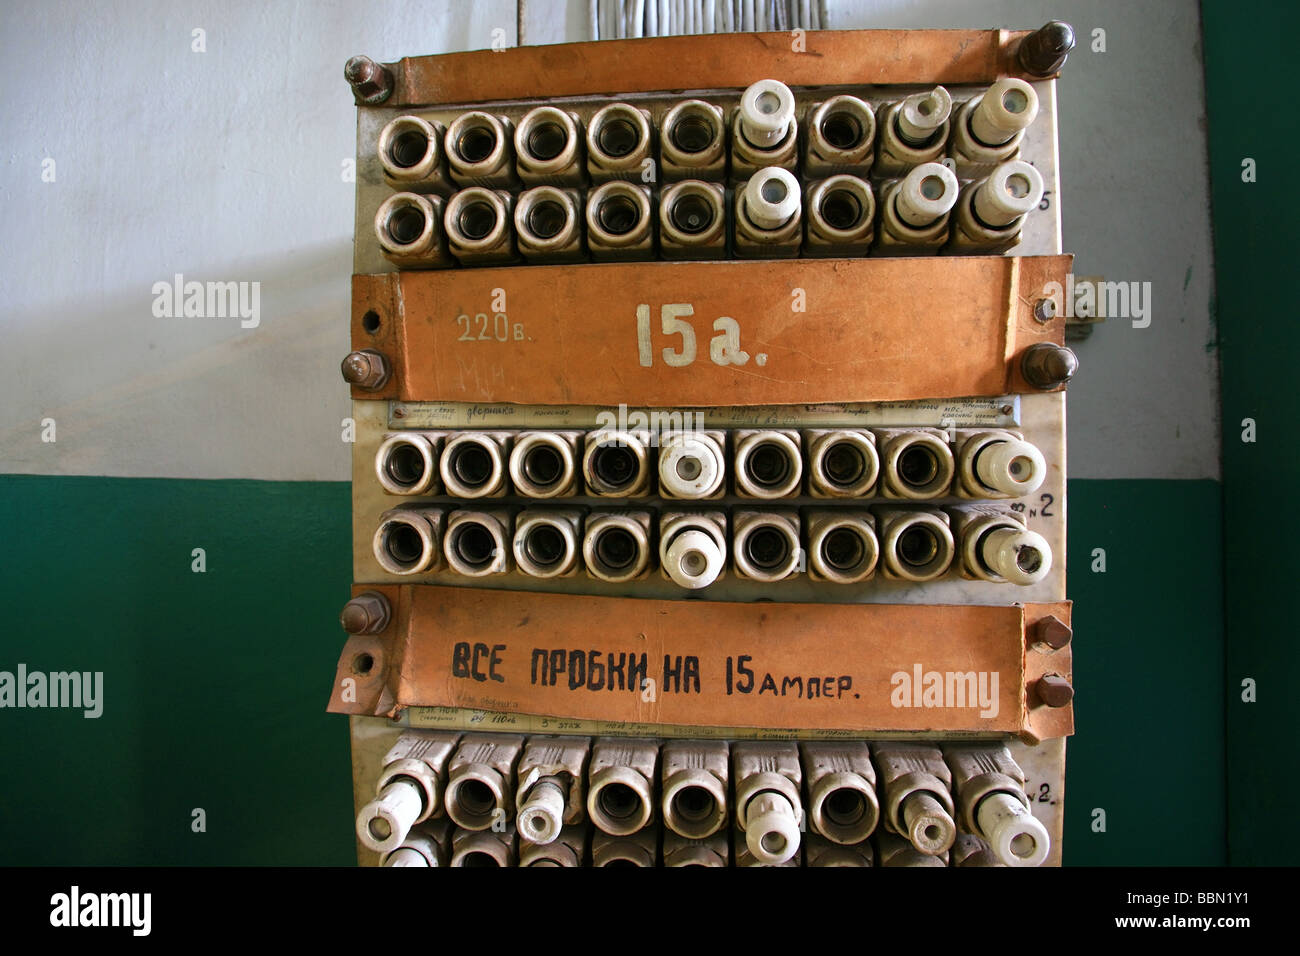 Old fuses in a fuse box - Stock Image